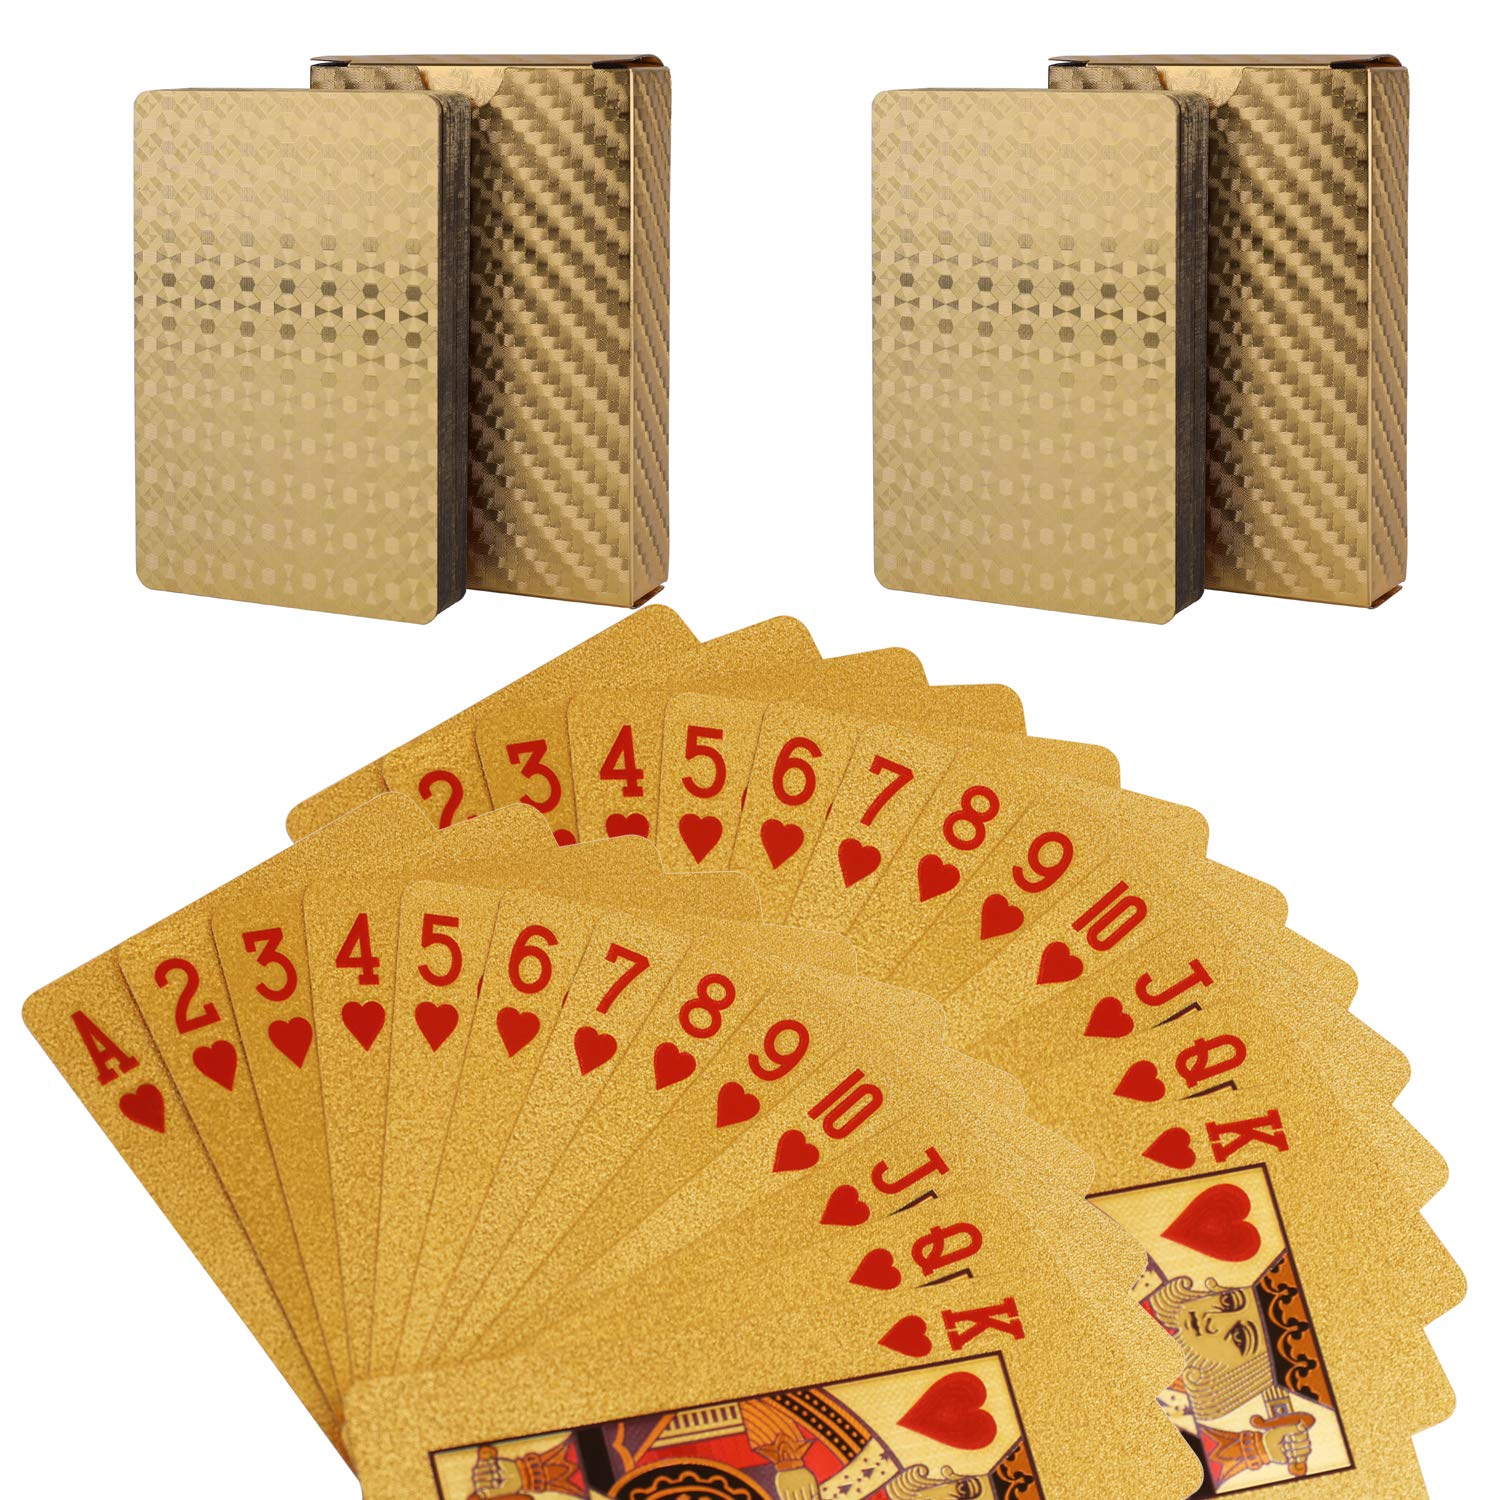 Waterproof Deck of Cards, 52+2 Playing Cards, 24k Gold Foil Plastic Poker Cards Standard Size - Luxury Magic Tricks Tools for Party and Table Game (2 Golden)